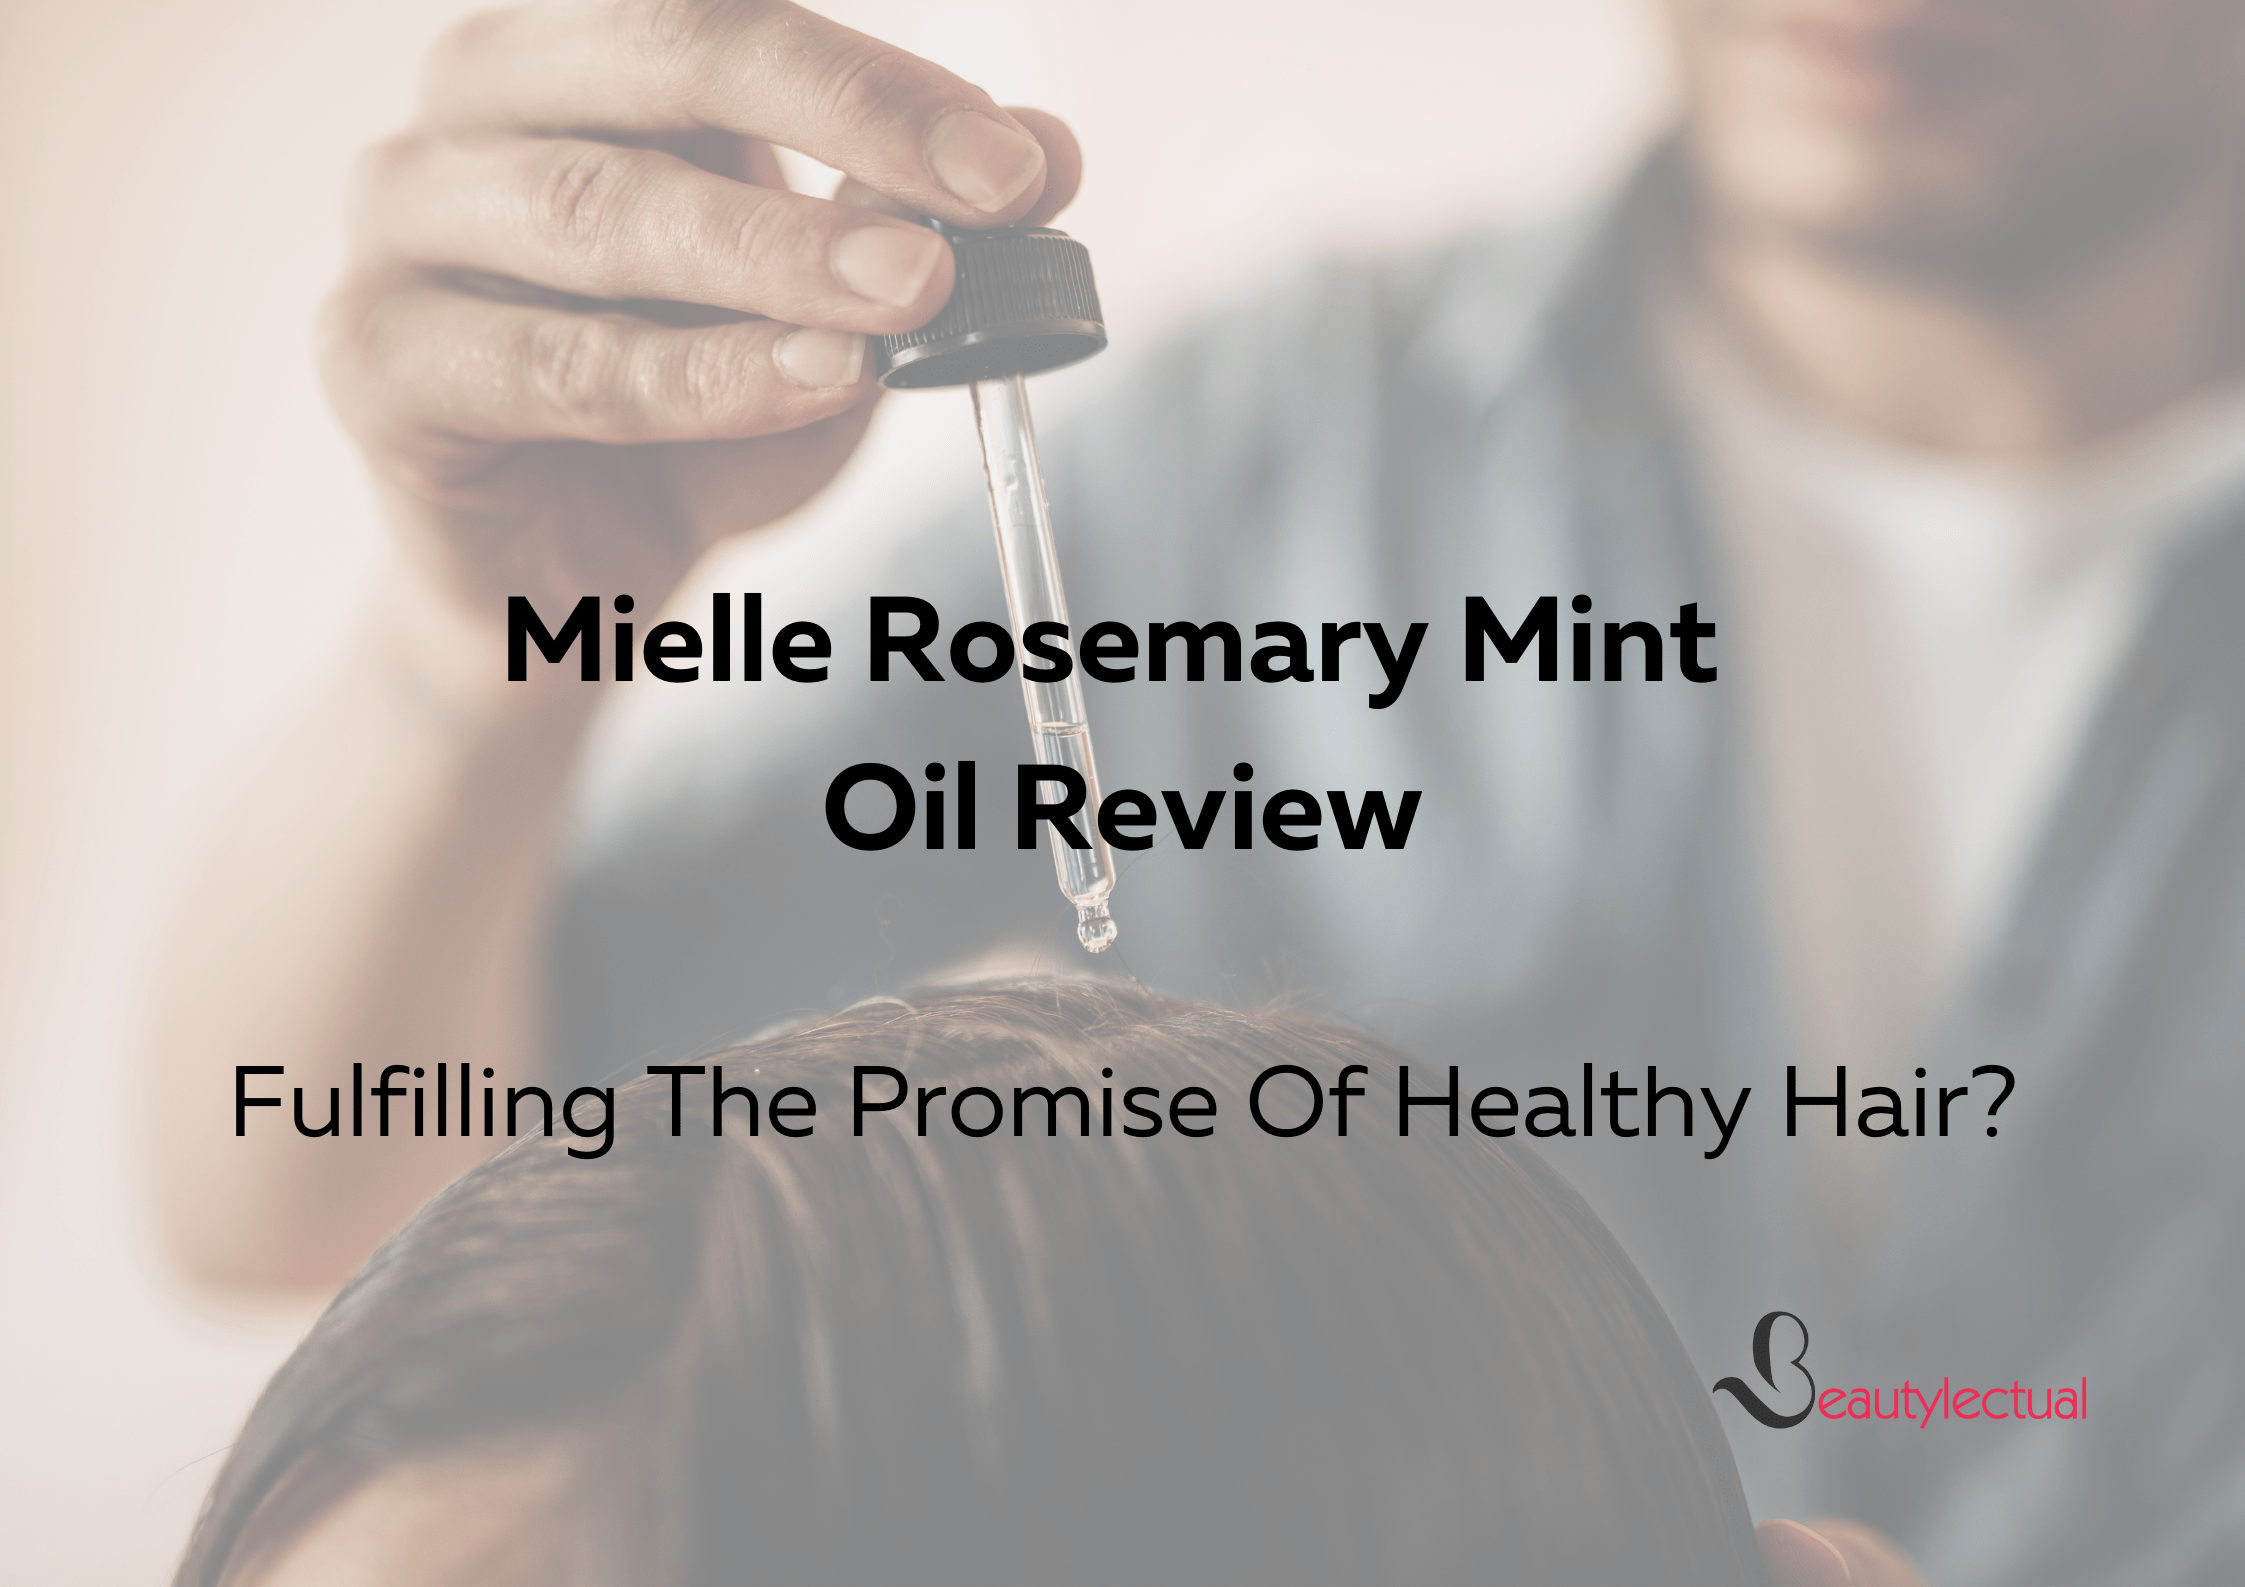 Mielle Rosemary Mint Oil Review